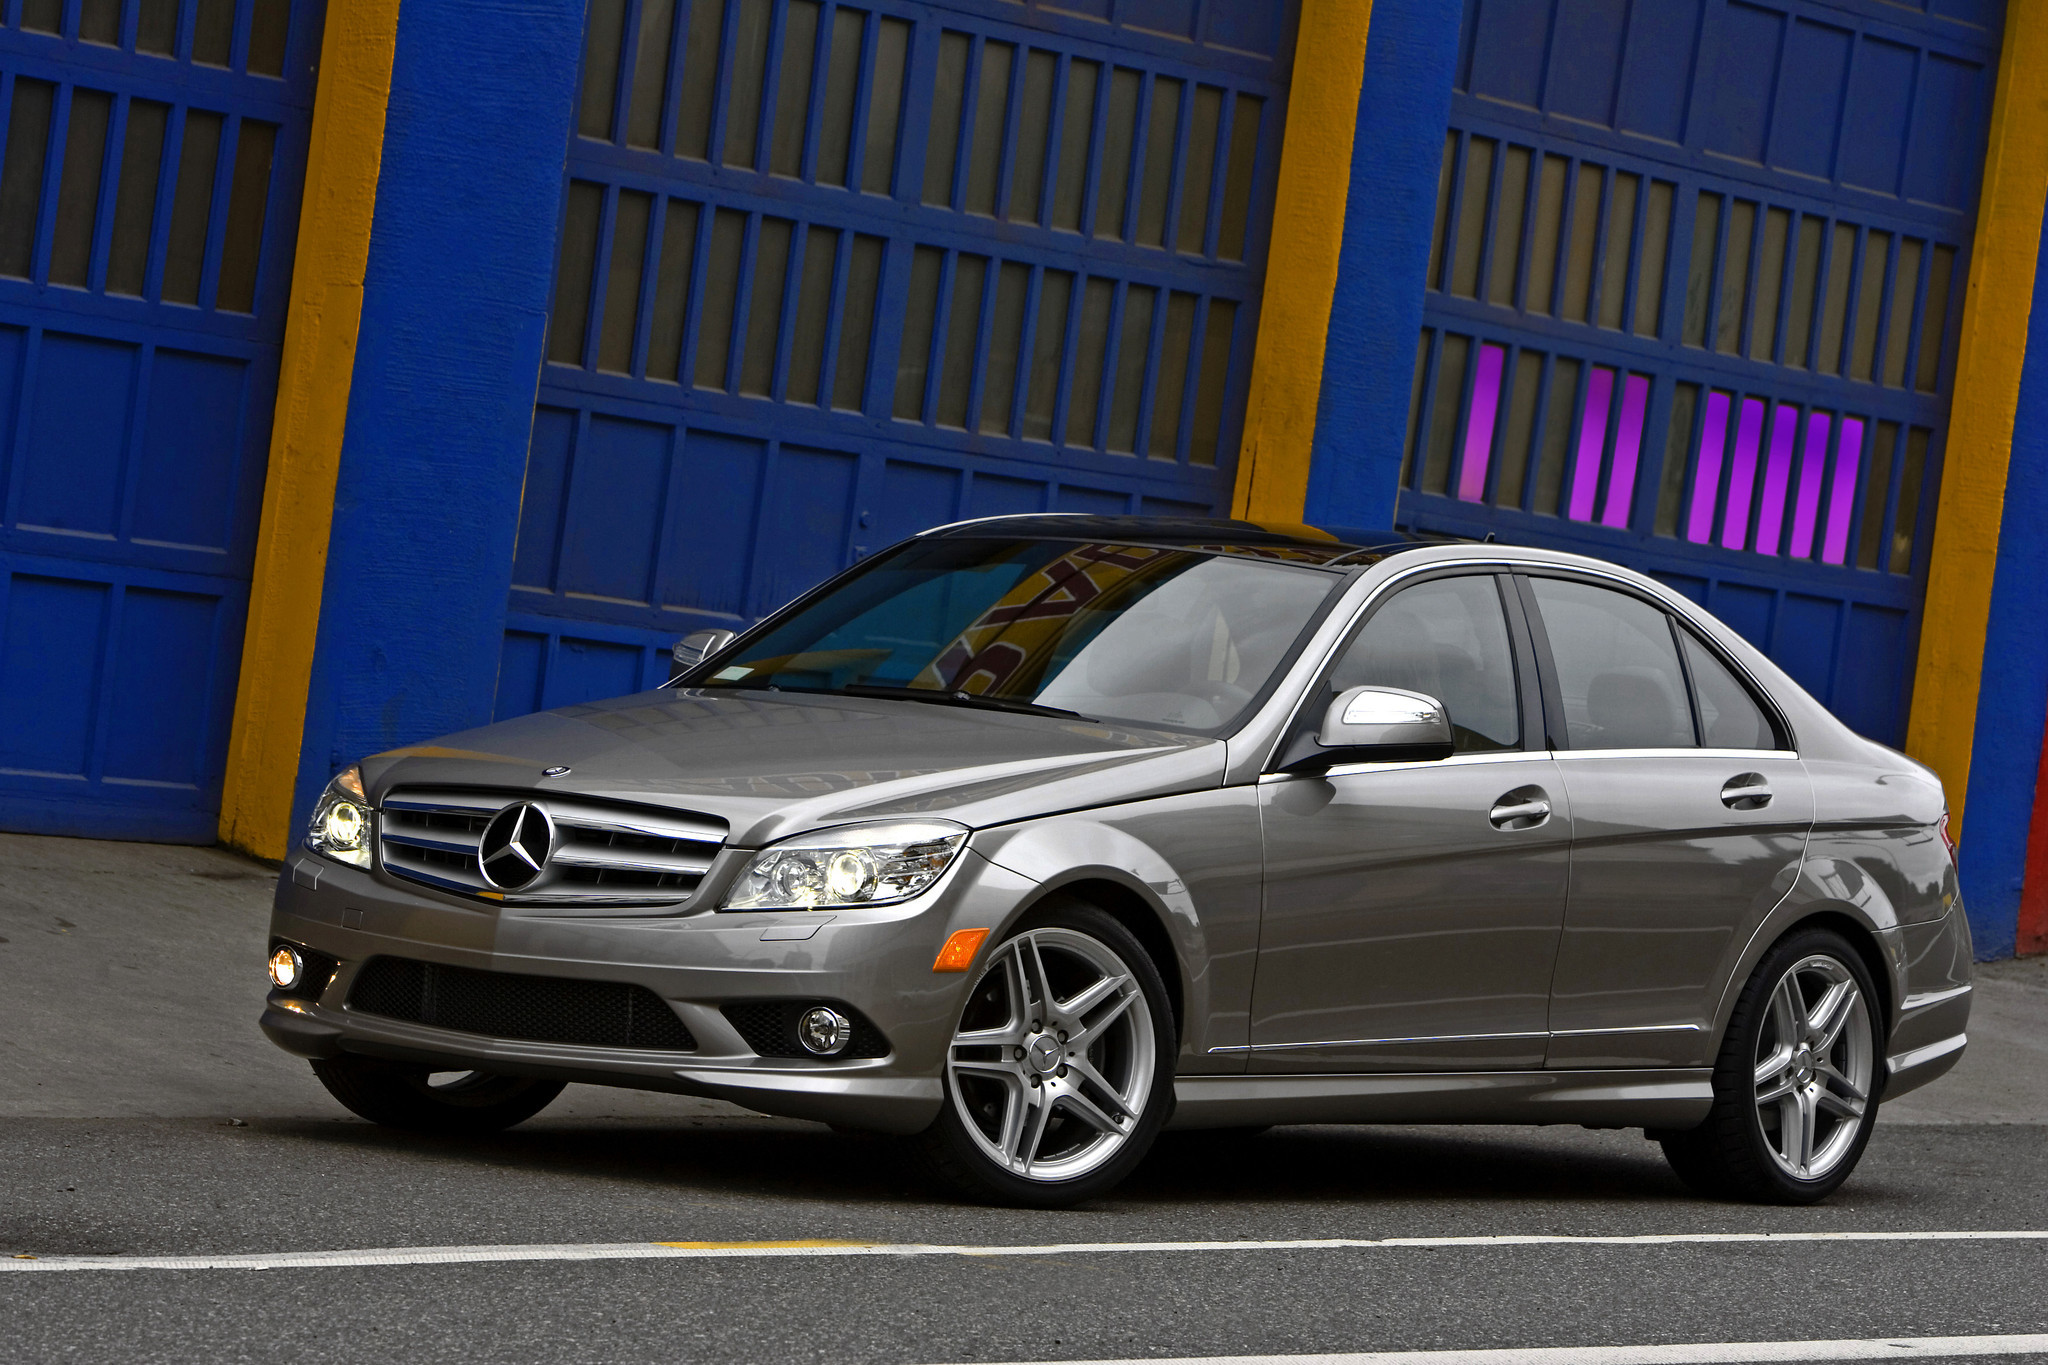 Mercedes benz recalls 284 000 c class cars in u s and for Recalls on mercedes benz